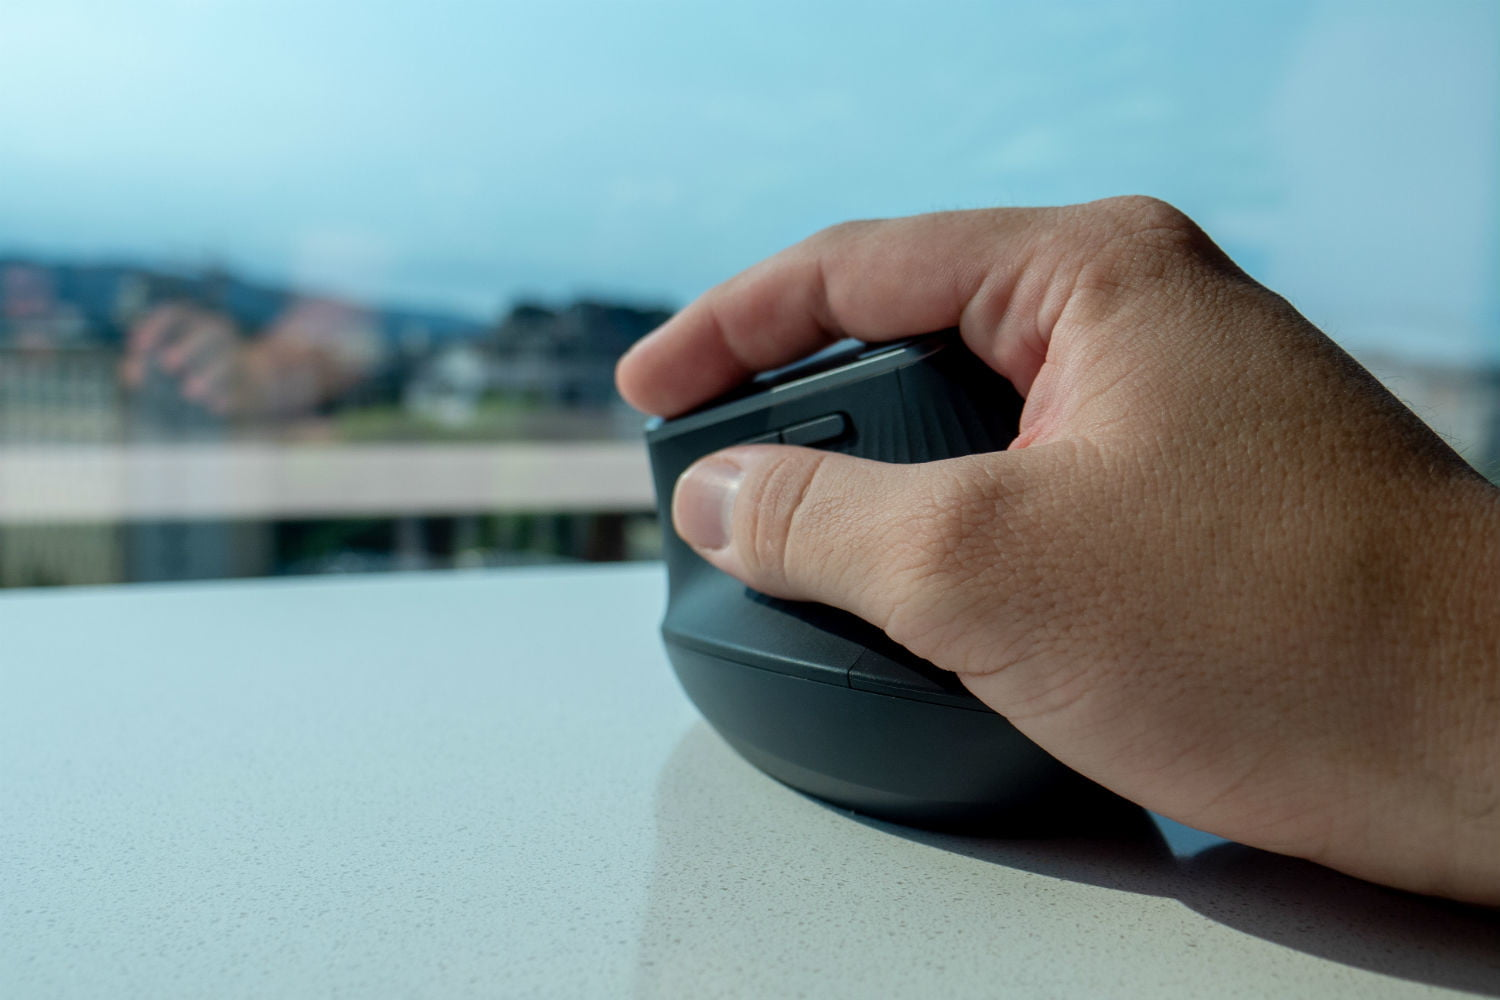 a4b0e6c36f5 The Best Ergonomic Mouse for 2019 | Digital Trends